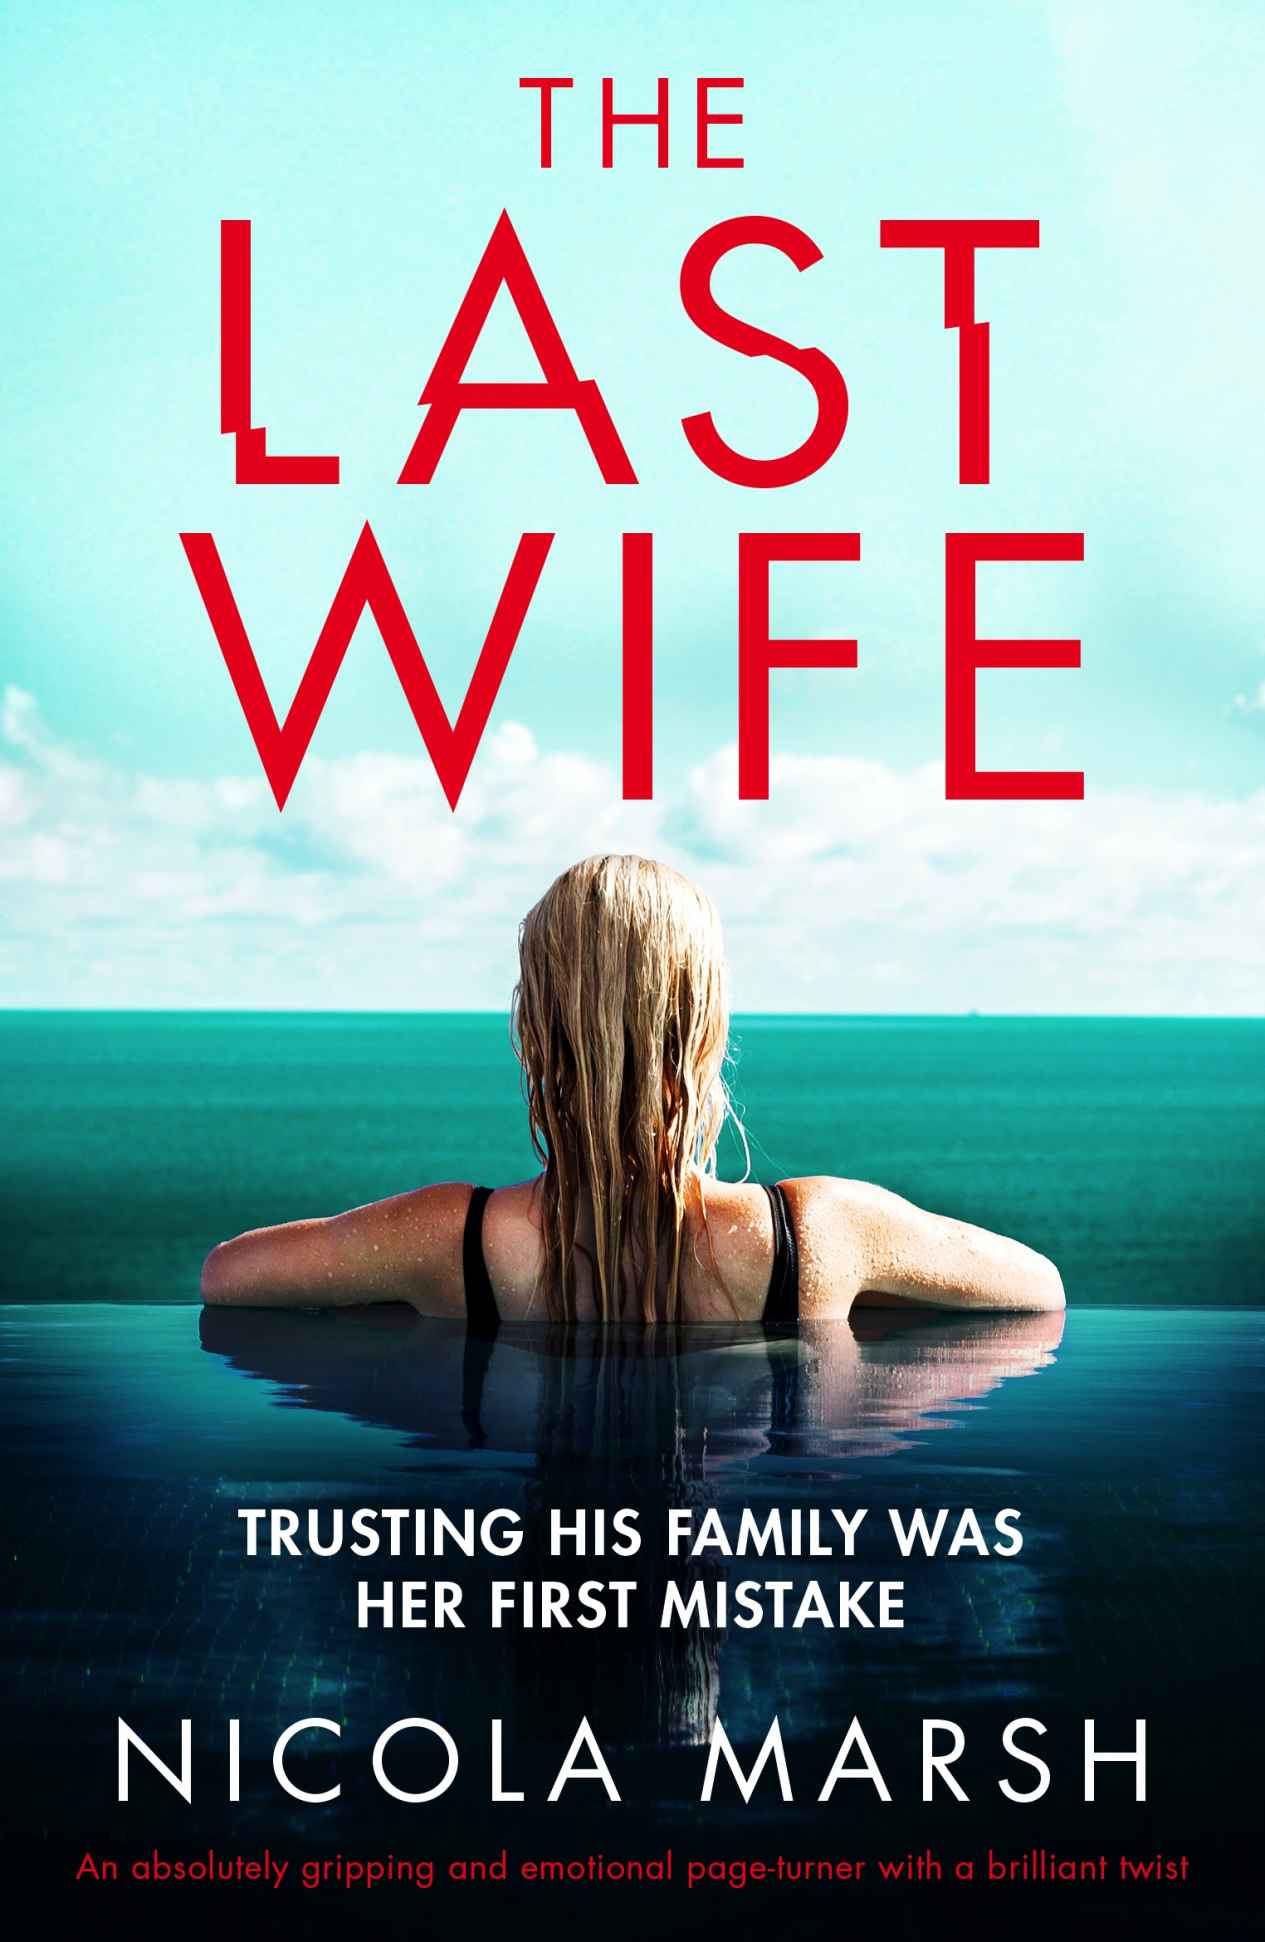 The Last Wife by Nicola Marsh